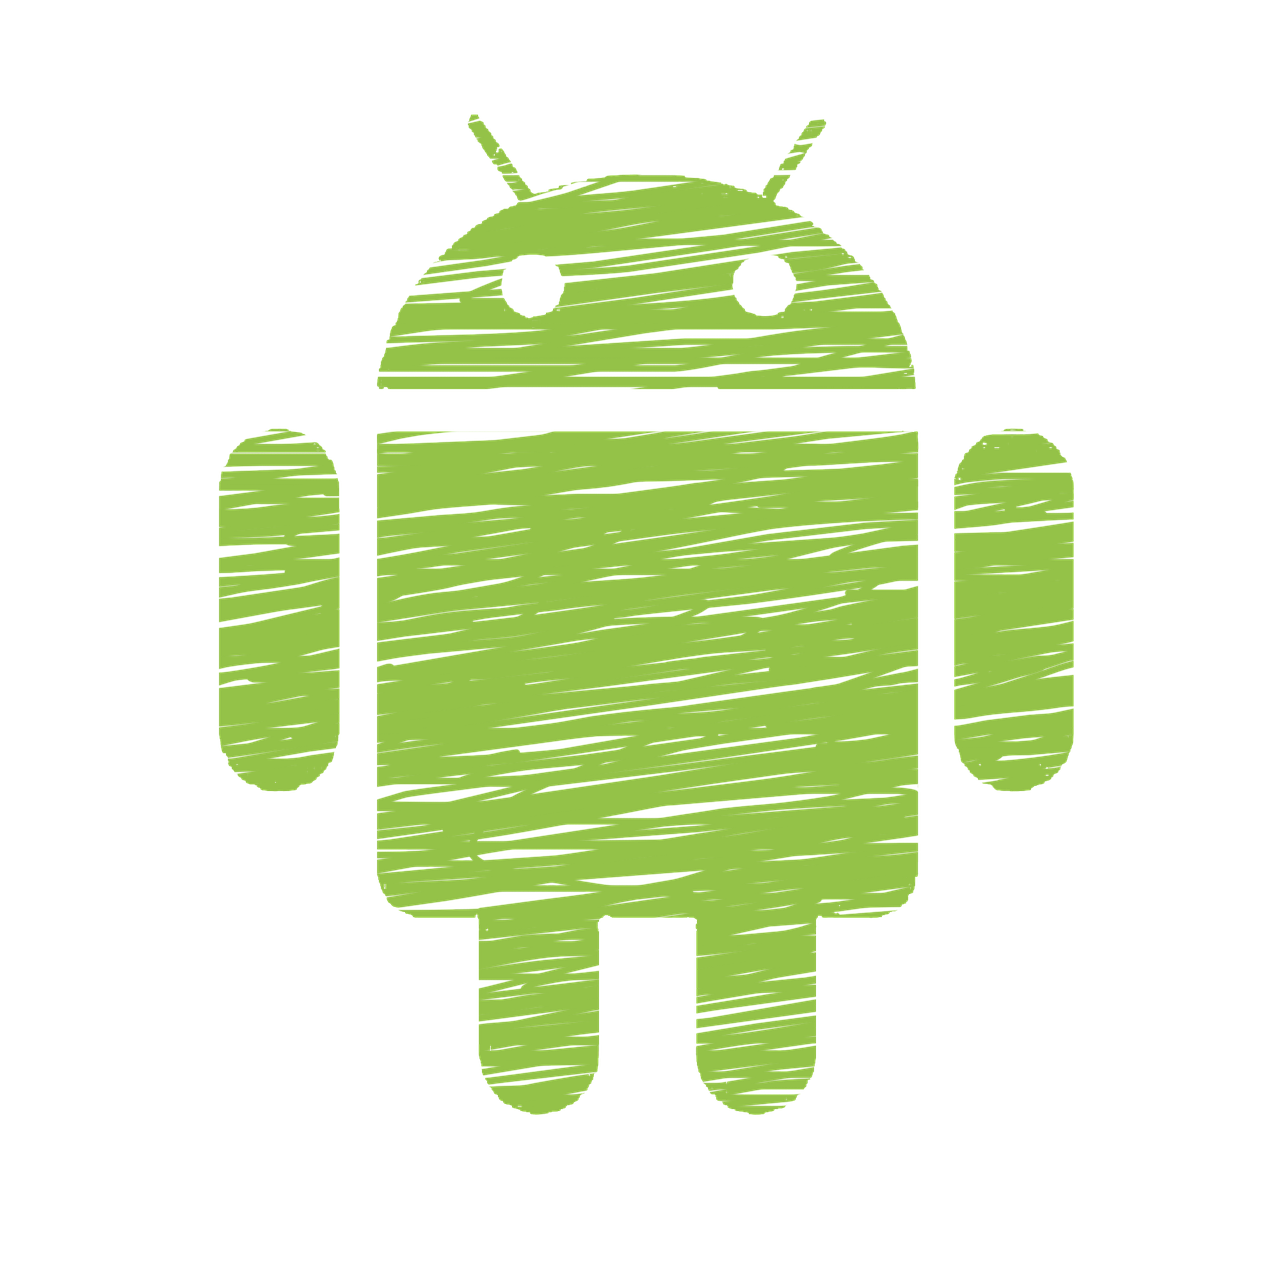 Comment installer d'anciennes versions d'applications Android